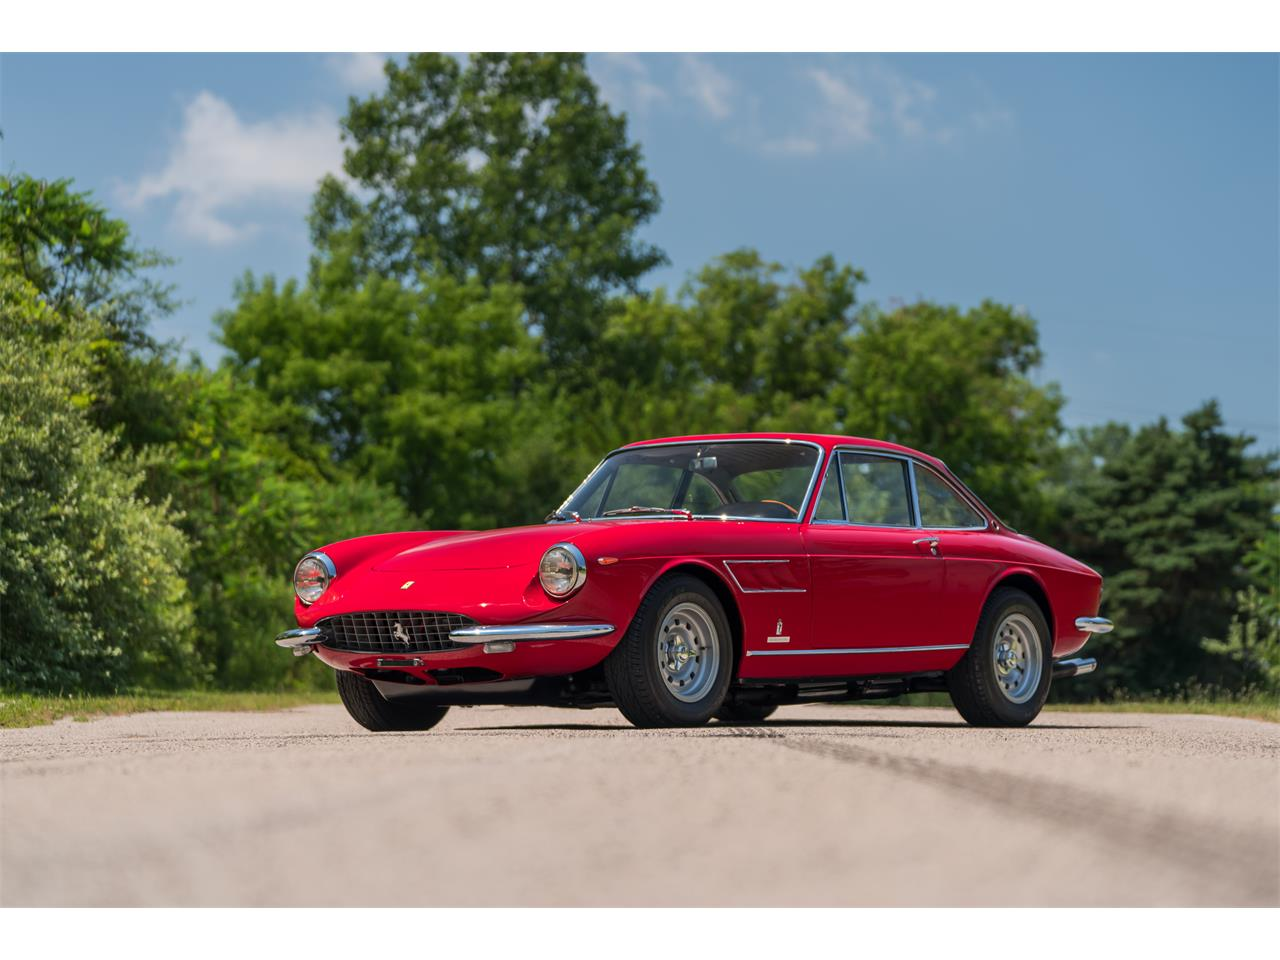 Large Picture of Classic 1967 330 GTC located in Michigan - $650,000.00 - QNXU